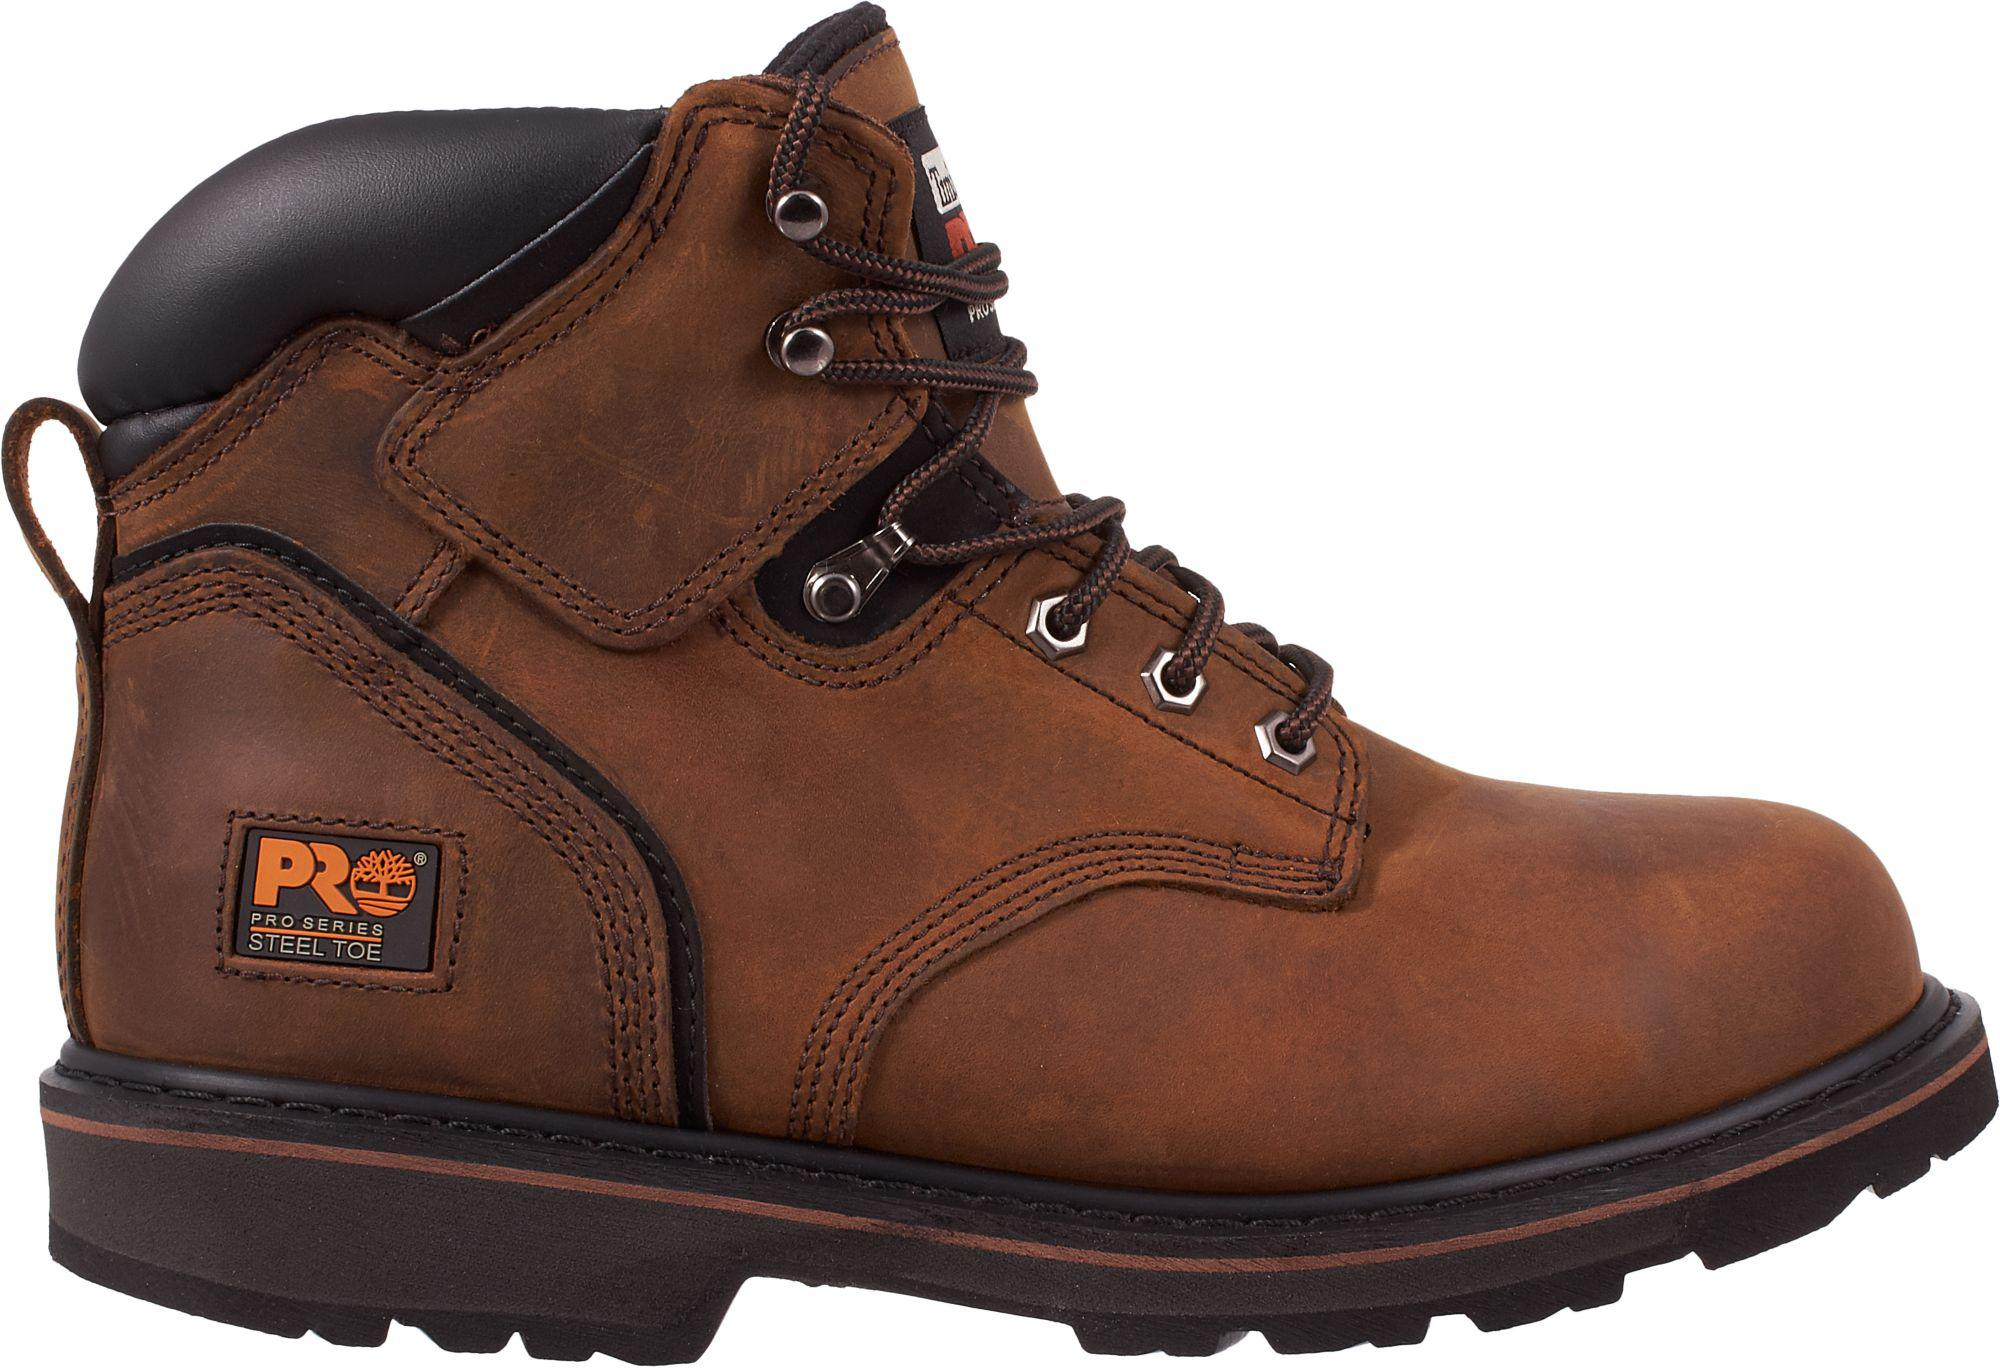 4a0d07232c73 Lyst - Timberland Pro Pit Boss 6   Steel Toe Work Boots in Brown for Men